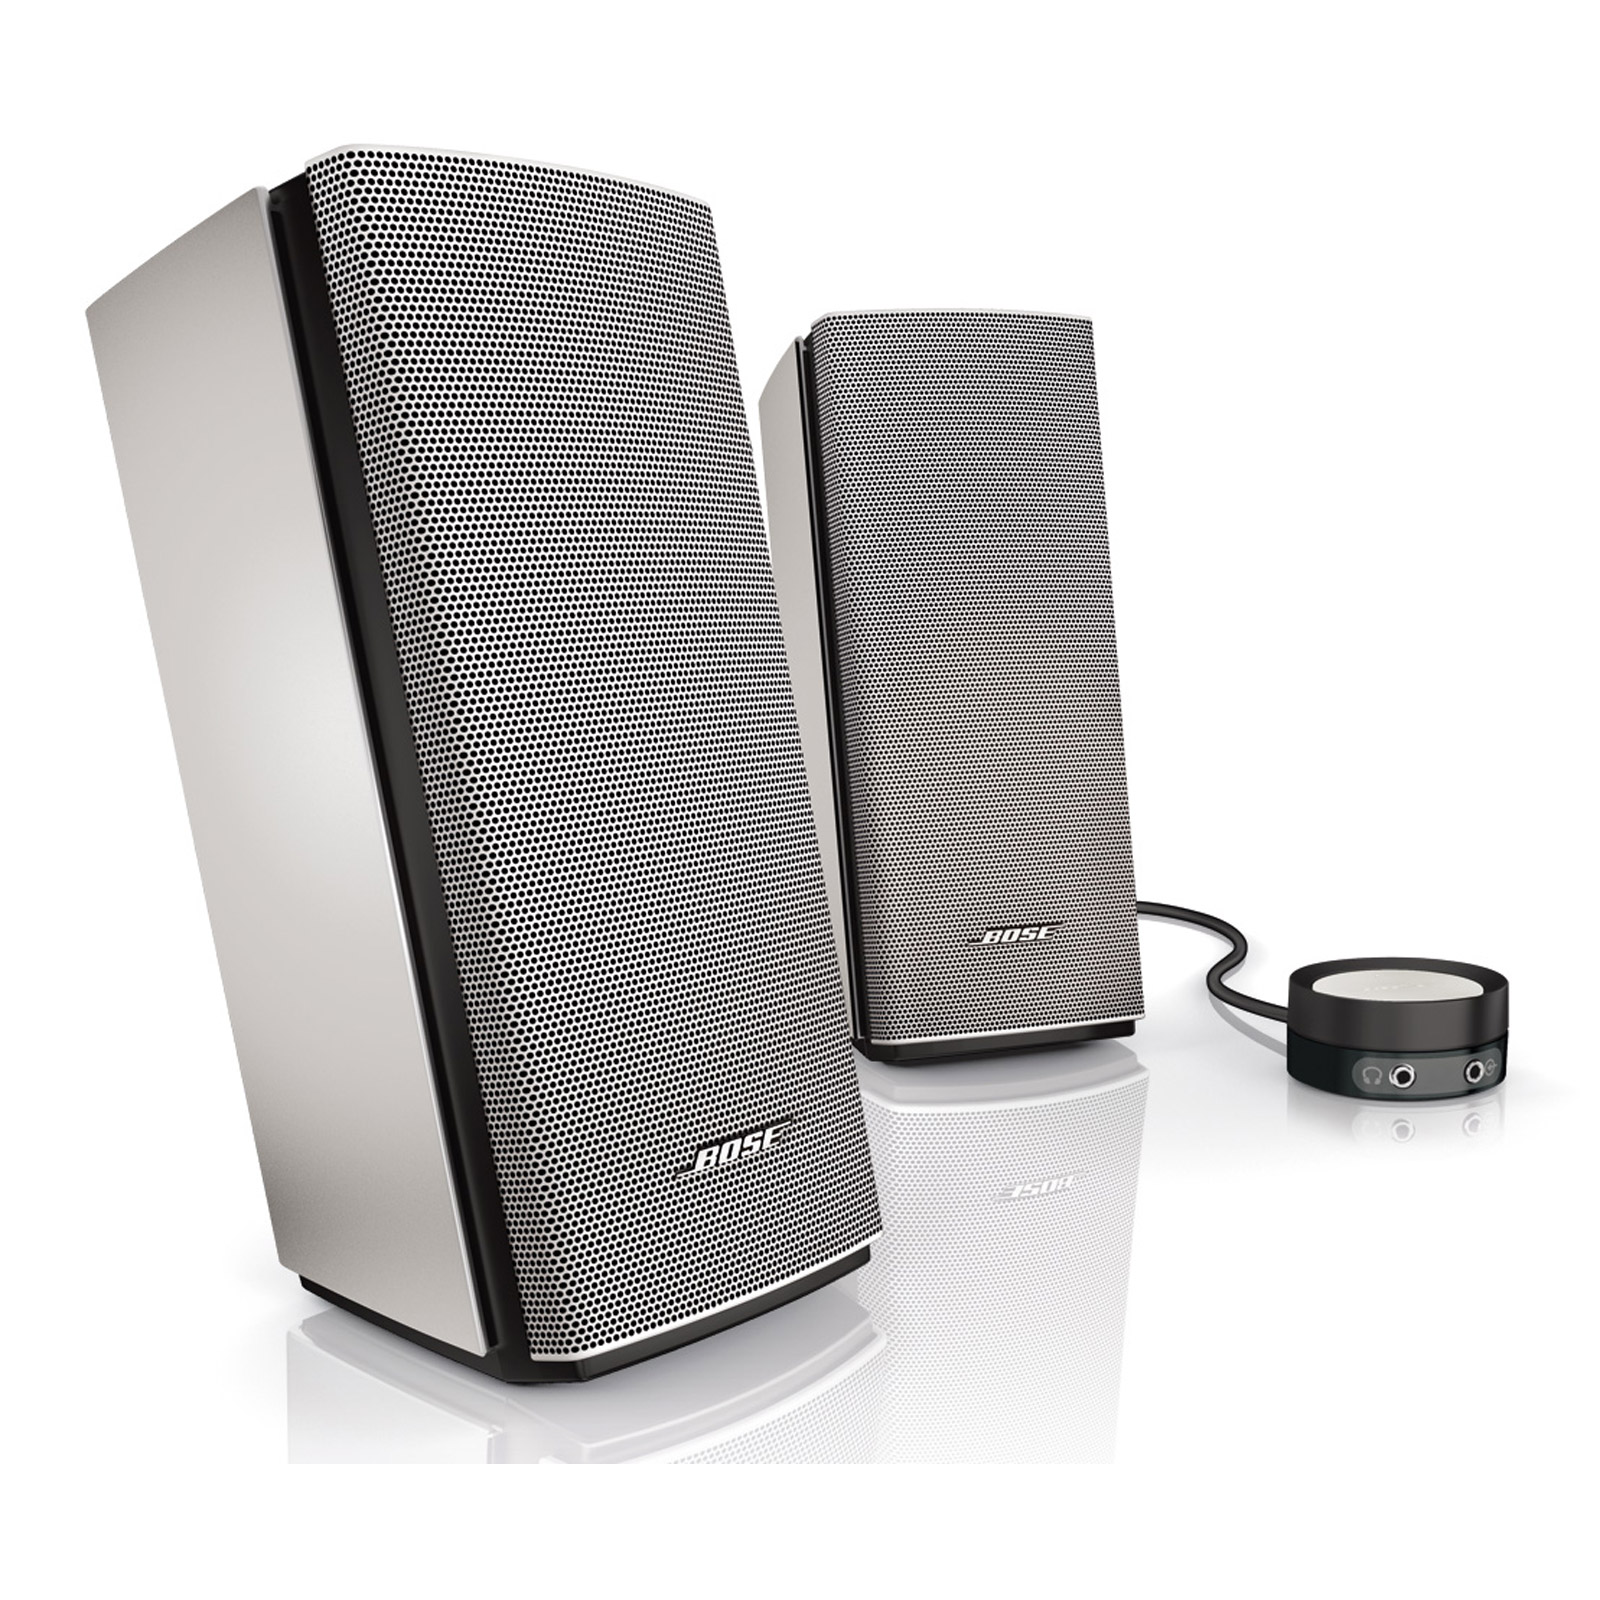 bose companion 20 enceinte pc bose sur ldlc. Black Bedroom Furniture Sets. Home Design Ideas